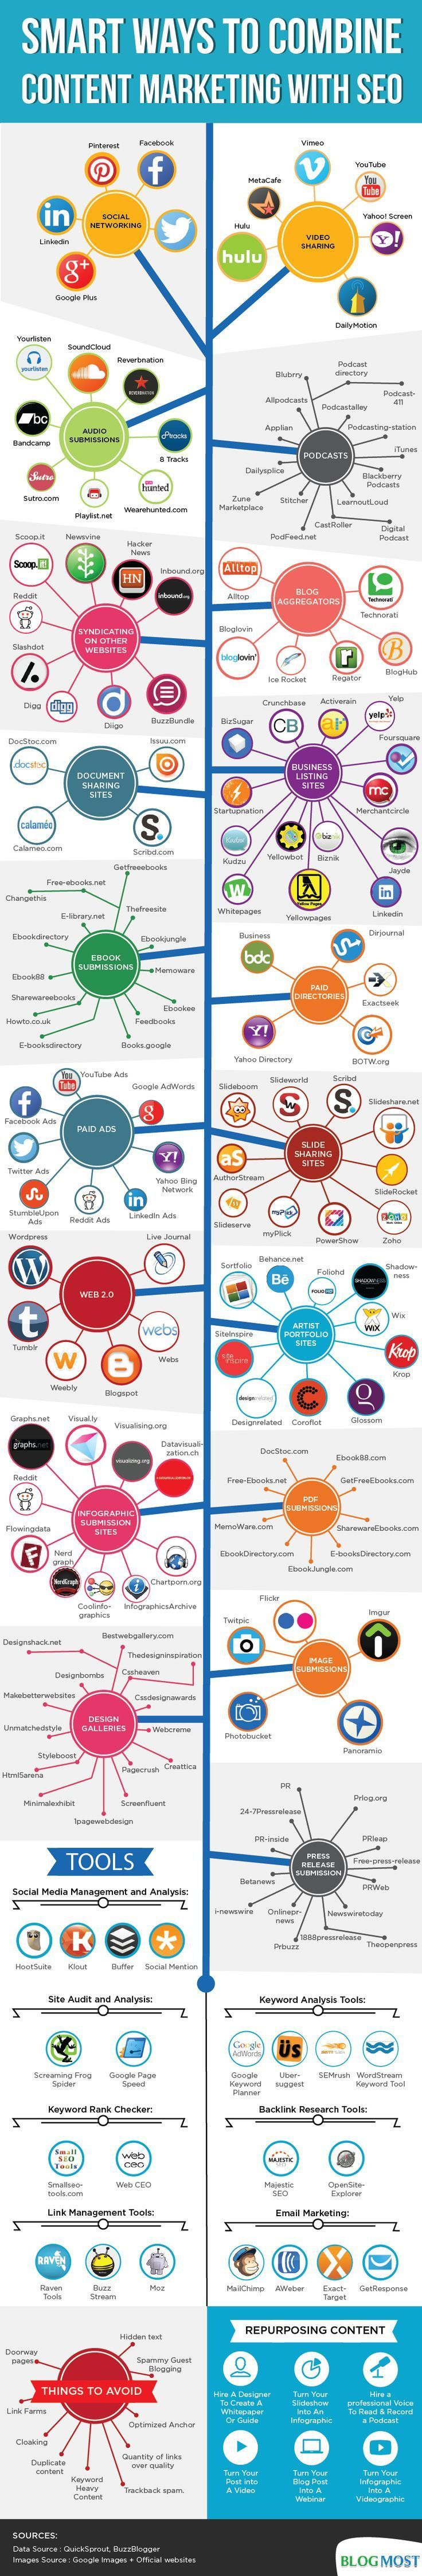 #Infographic on some smart ways to combine content marketing with search engine optimization available at http://Webmag.co   Digital Resources for Net Professionals from #WebsiteMagazine